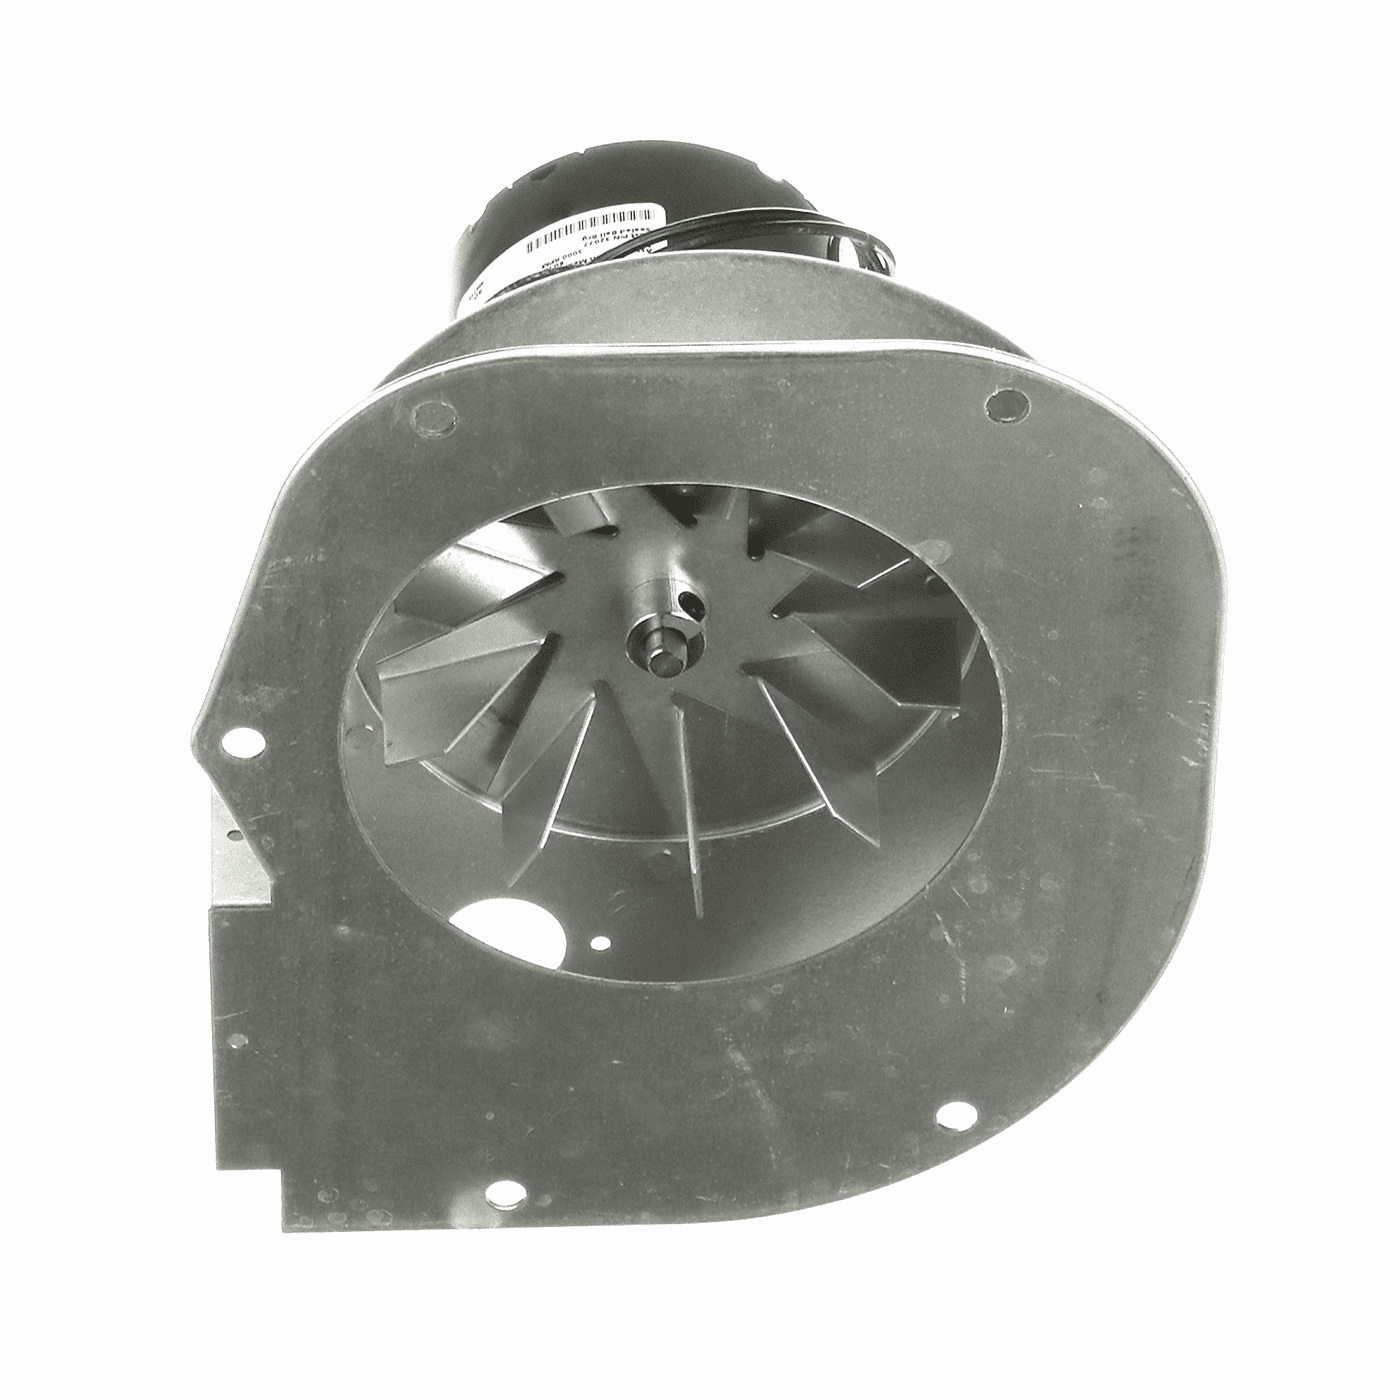 H6018 | Combustion Blower for Winslow Country Pellet Stove PS40 Part #H6018